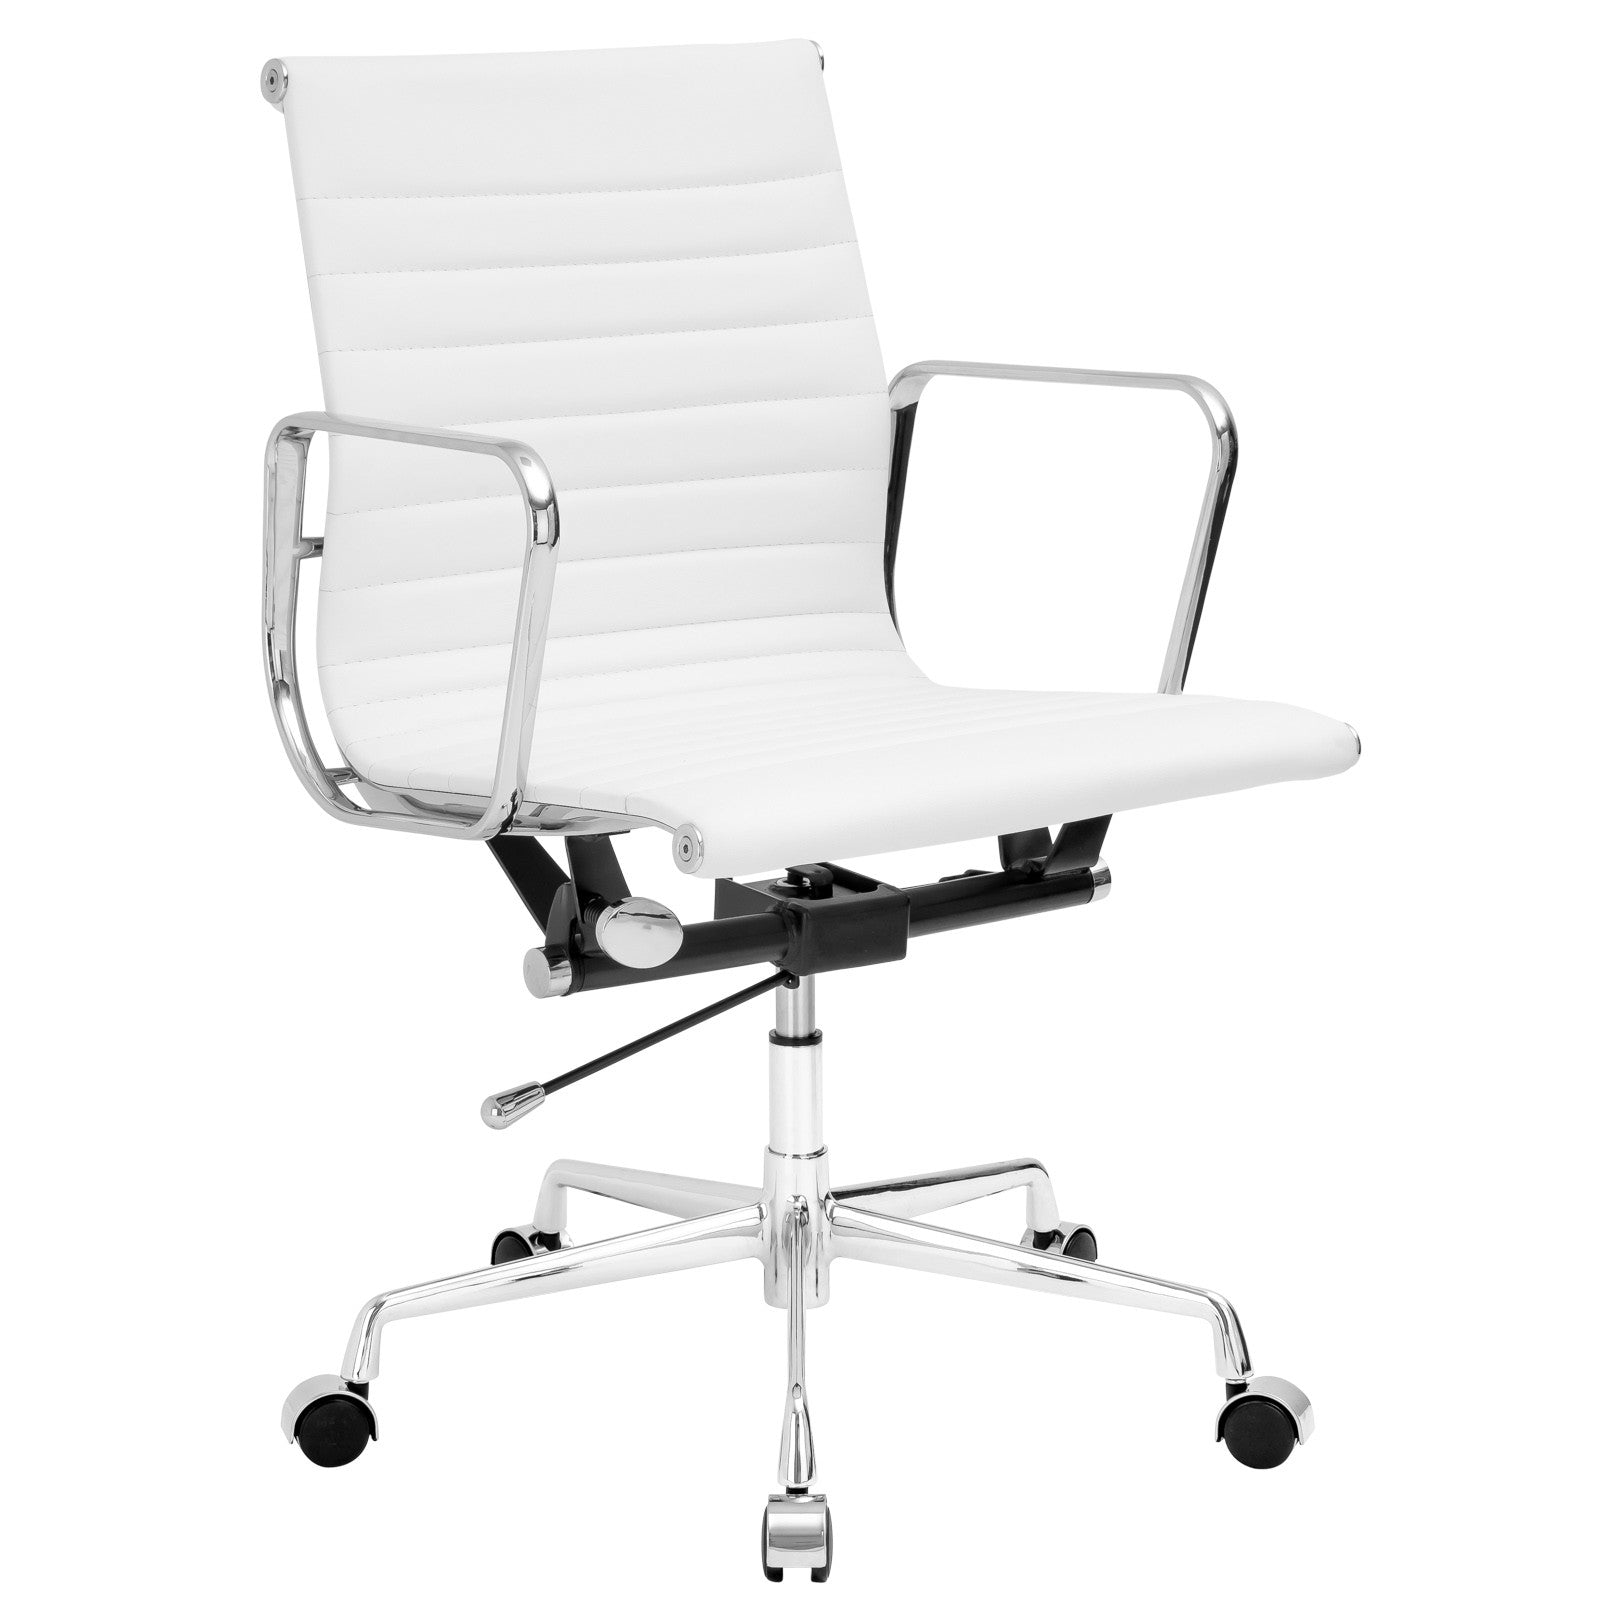 mid aluminum office chair white italian. Lanna Furniture Estey Mid Back Office Chair With Italian Leather White, Chairs - Aluminum White A